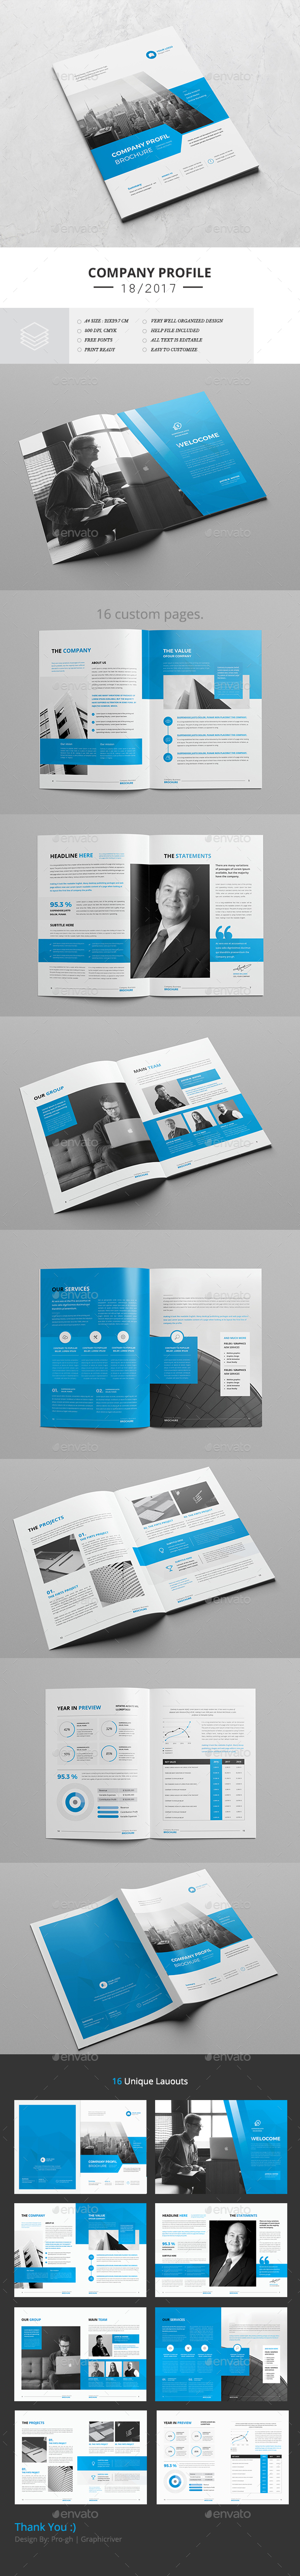 GraphicRiver Corporate Brochure 16 Pages 20655591